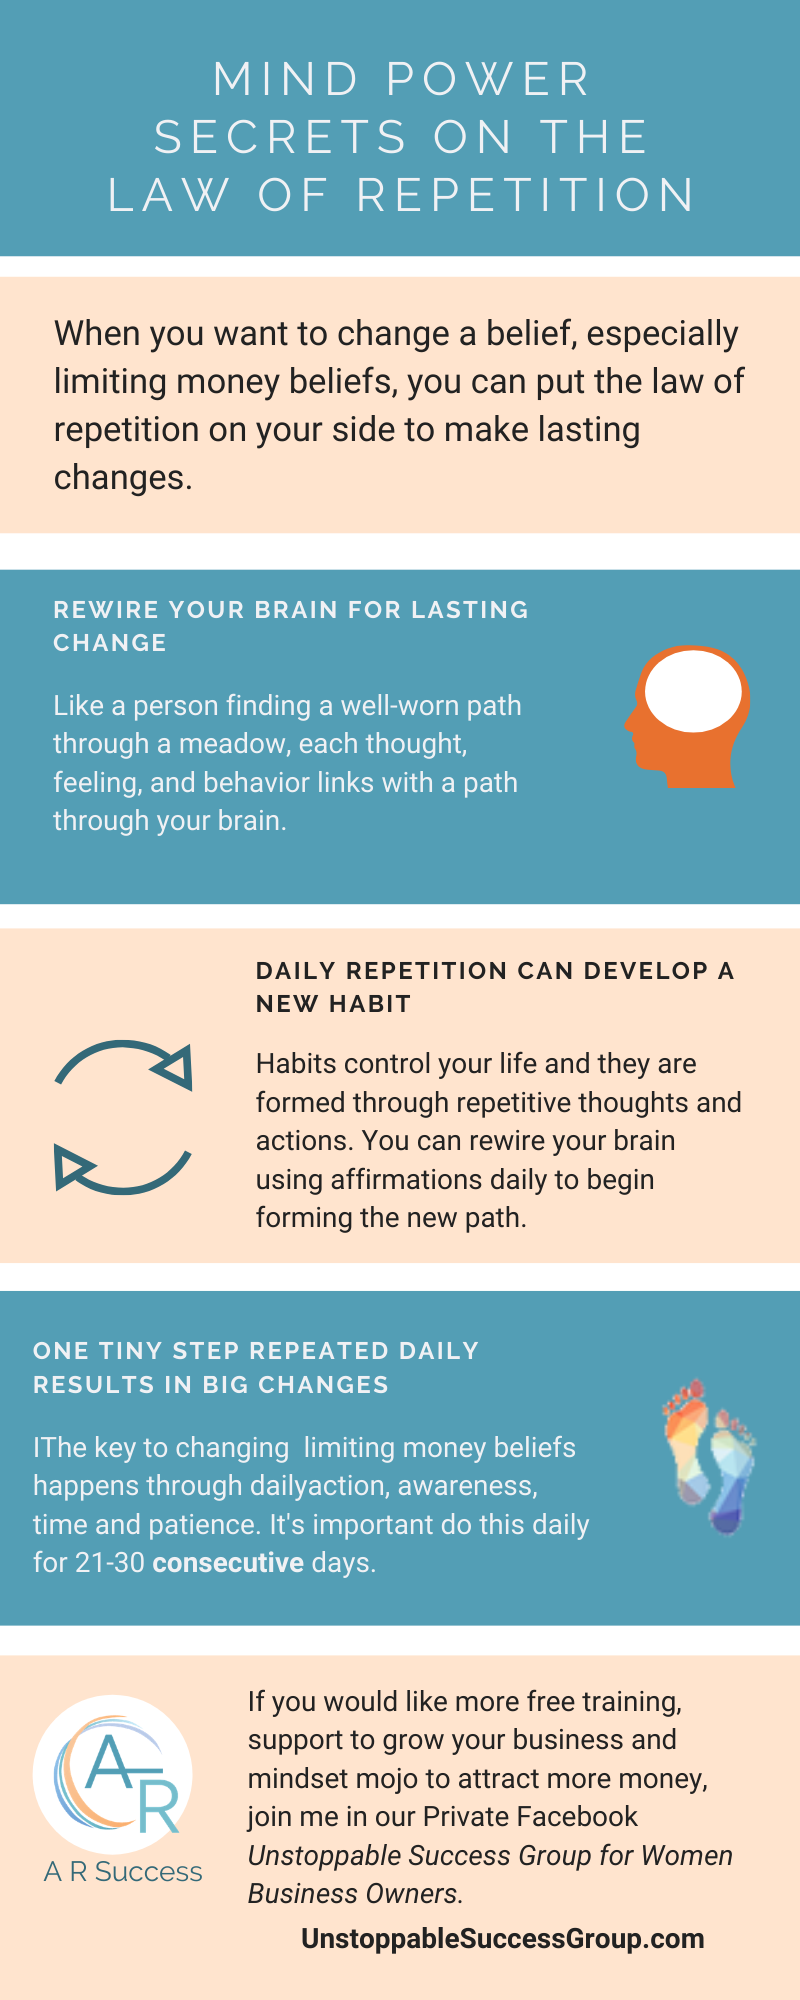 Mind-Power-Secrets-Repetition-Infographic